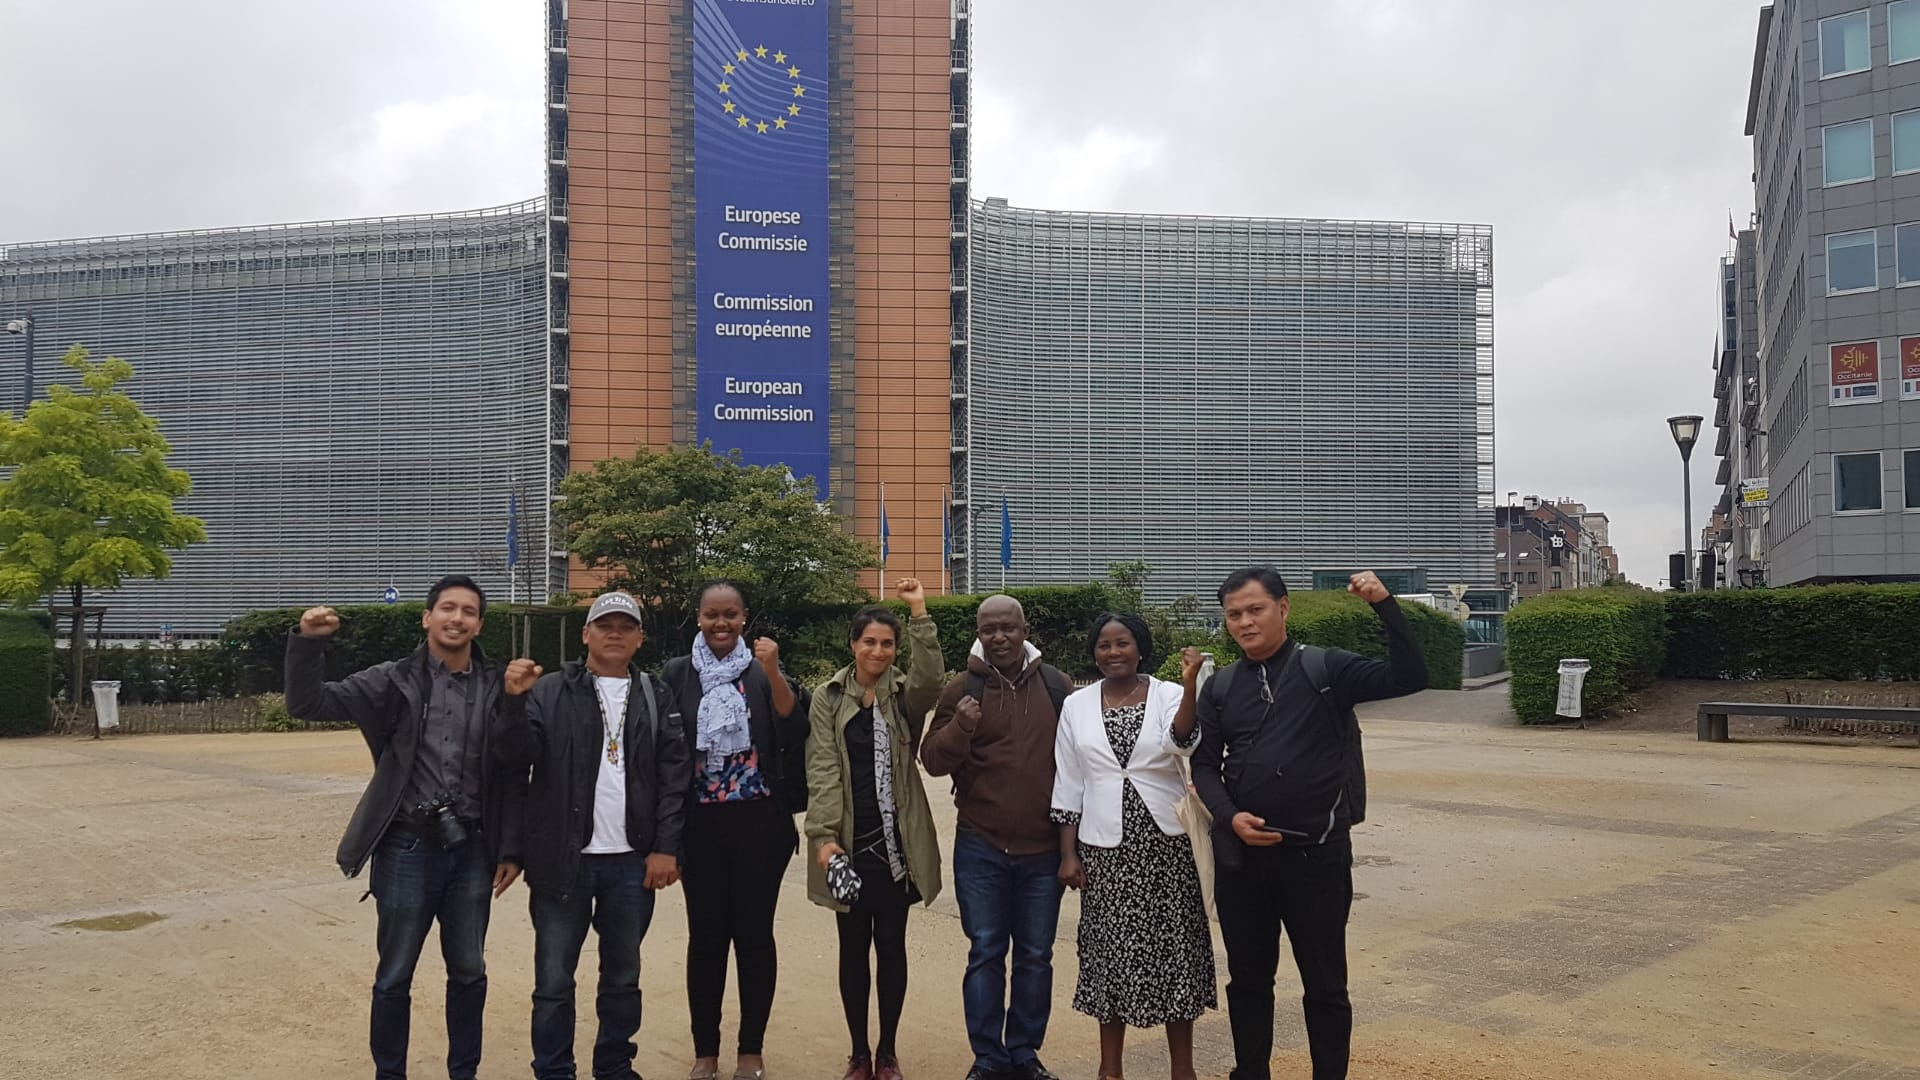 Lobby tour participants outside the EU Brussels